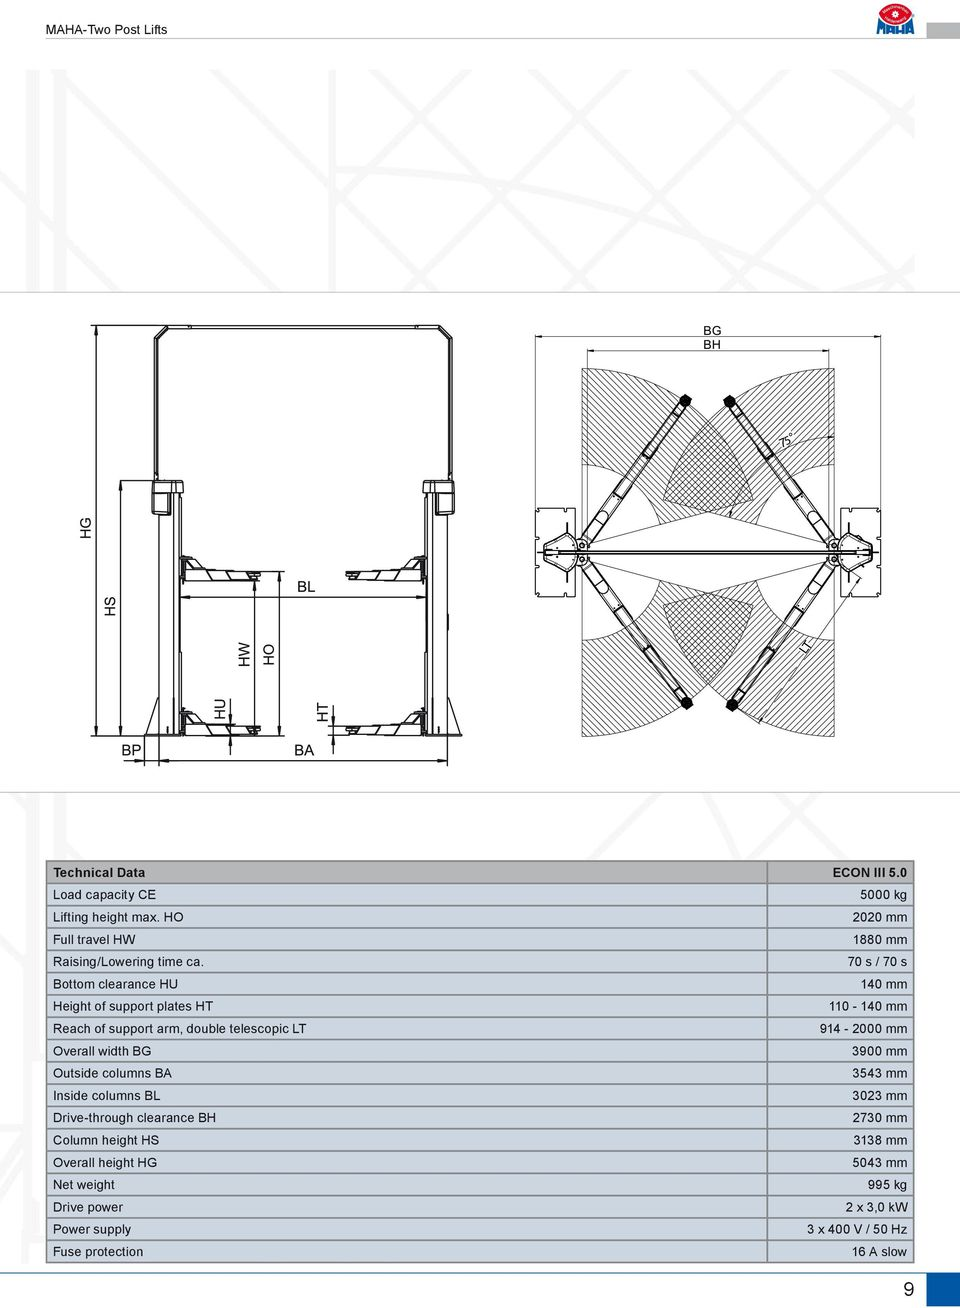 Maha Two Post Lifts Model Econ Iii 30 35 40 2000 Hyundai 15l Fuse Box Diagram 70 S Bottom Clearance Hu 140 Mm Height Of Support Plates Ht 110